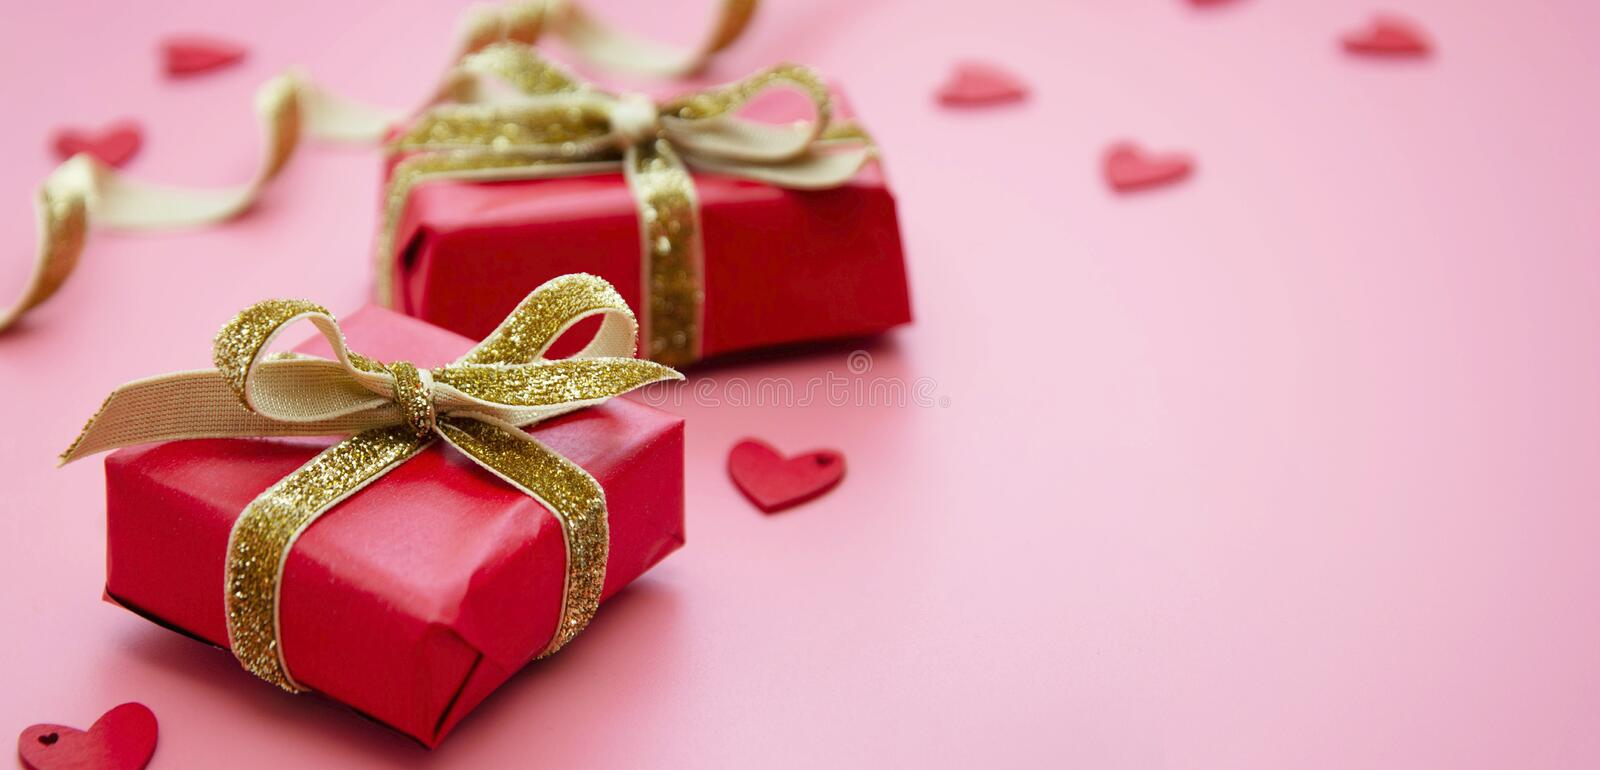 Red gift box and golden bow, on pink background. Valentine's Day, Birthday, Party concept. Mock up stock image